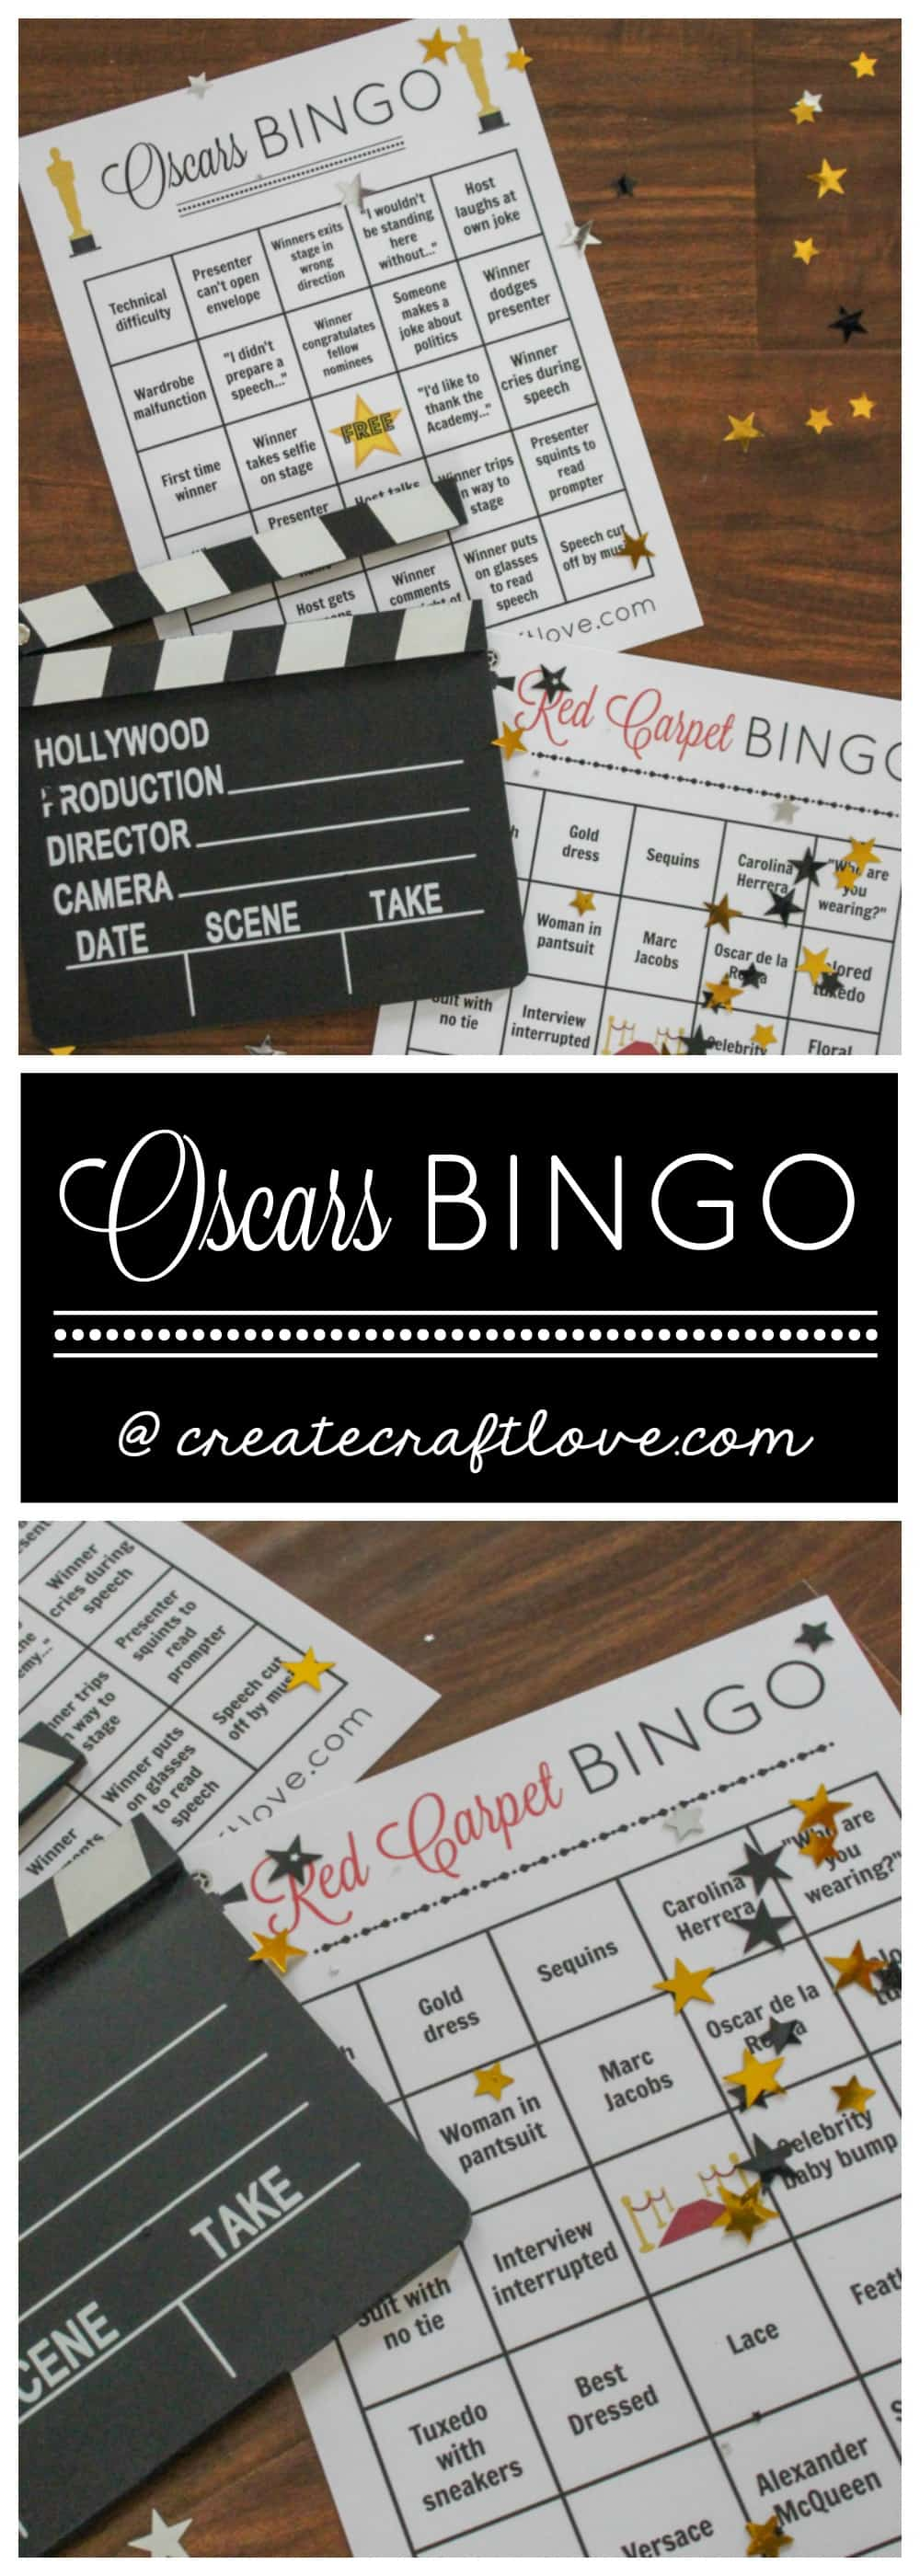 who doesn't love a good movie?! You can get involved in the magic of the movies by following along with our Oscars Bingo Printable! via createcraftlove.com